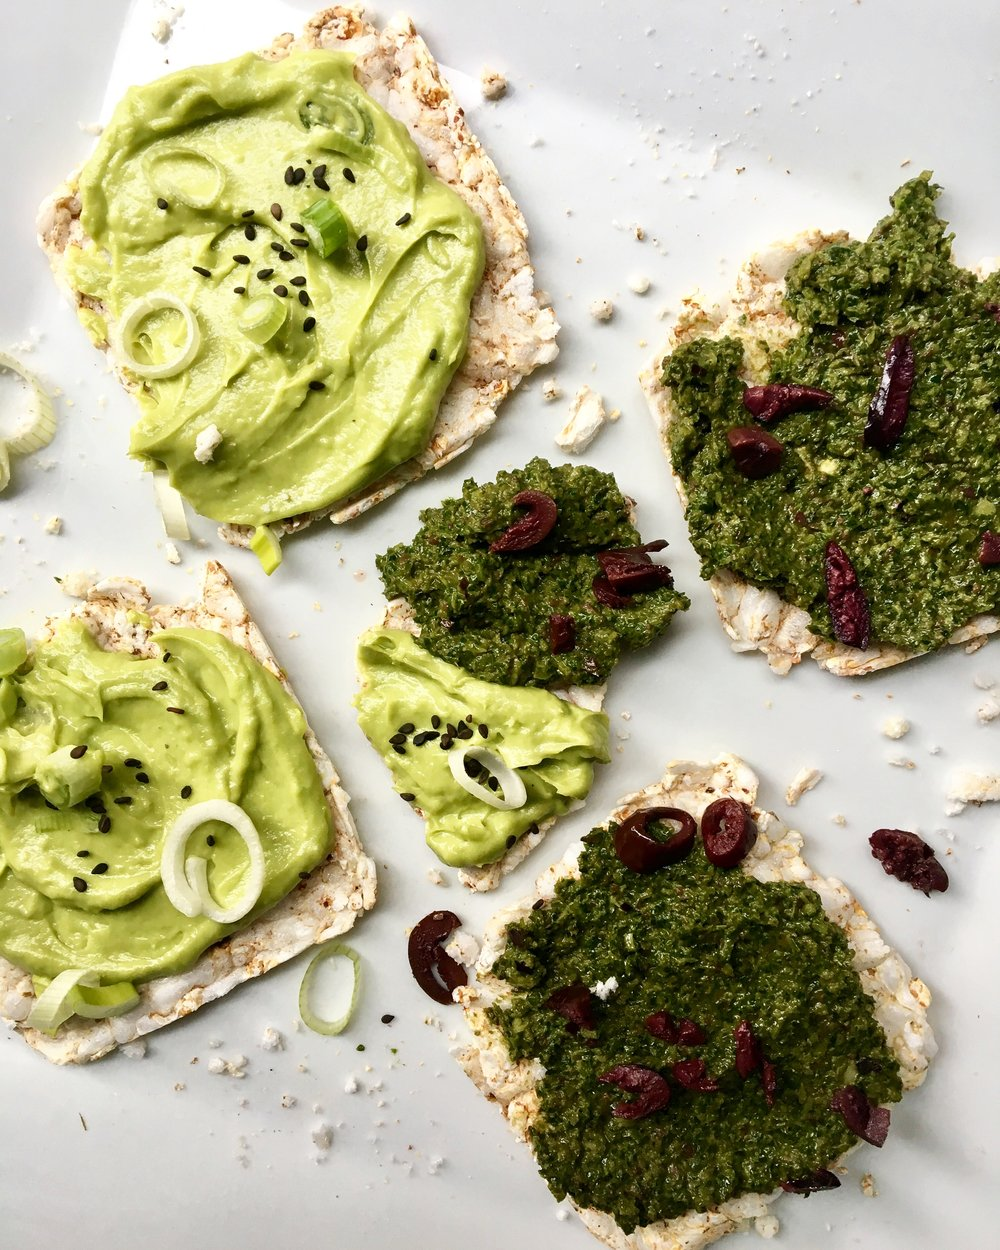 Miso Guac Toasts Bare (Eat 'em plain folks!)